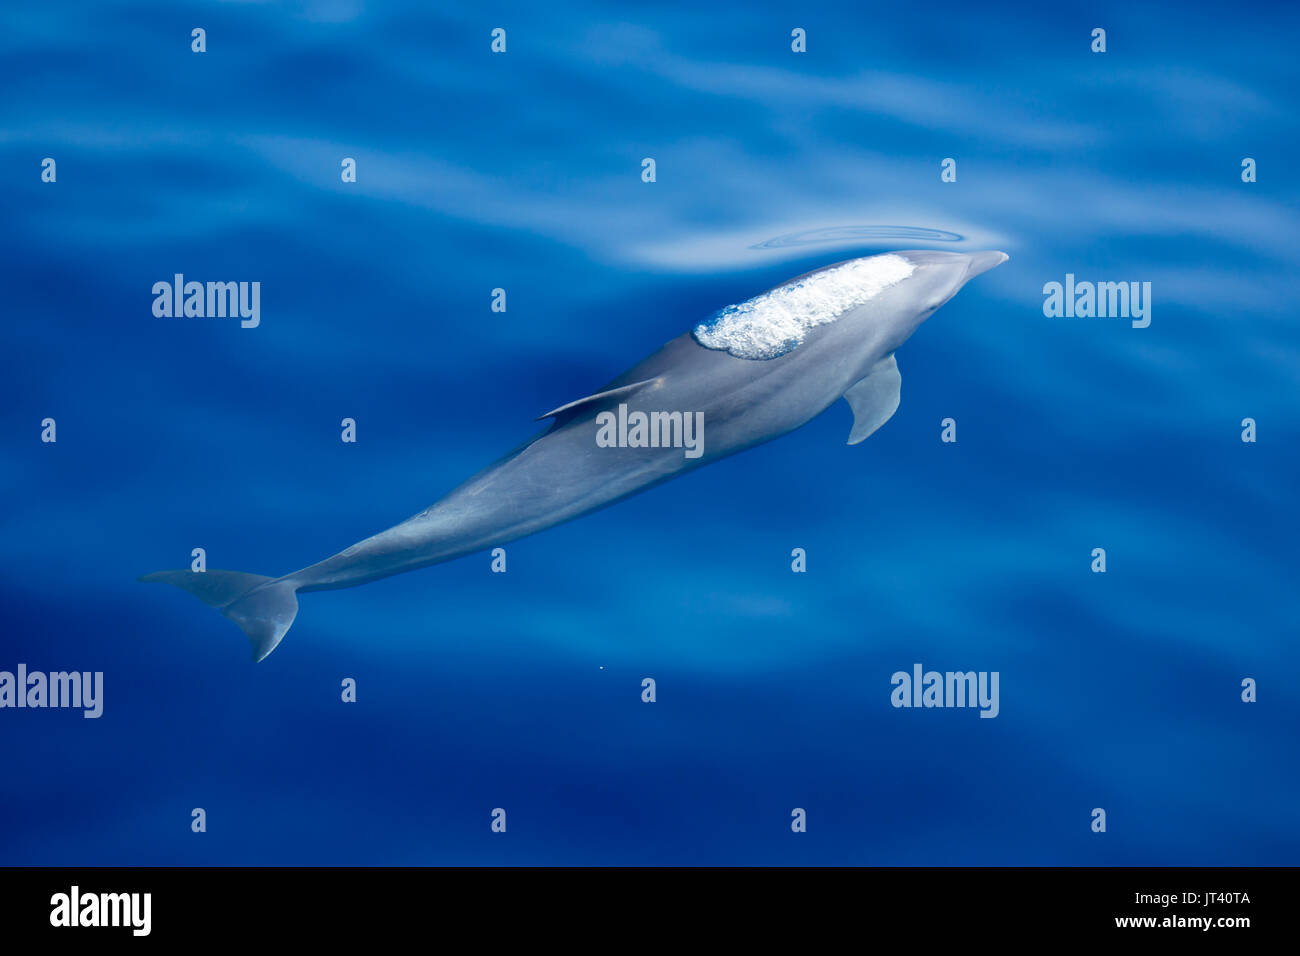 Indo-Pacific Bottlenose Dolphin (Tursiops aduncus) about to surface in the glassy calm sea - Stock Image